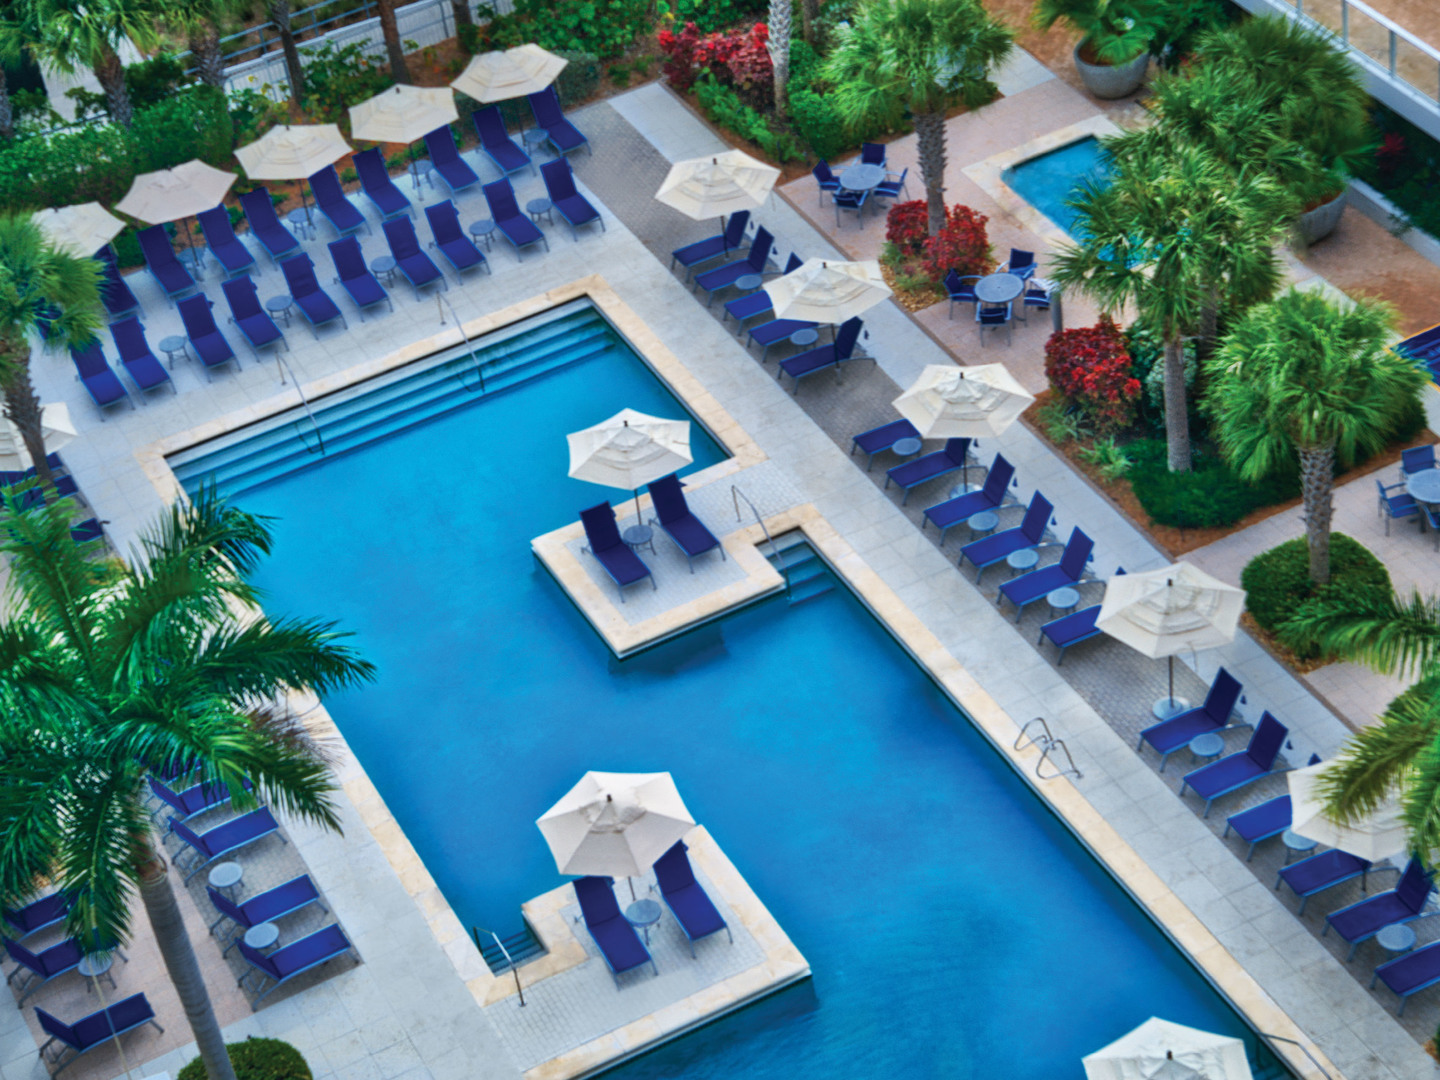 Marriott's Crystal Shores Resort Pool View from Above. Marriott's Crystal Shores is located in Marco Island, Florida United States.